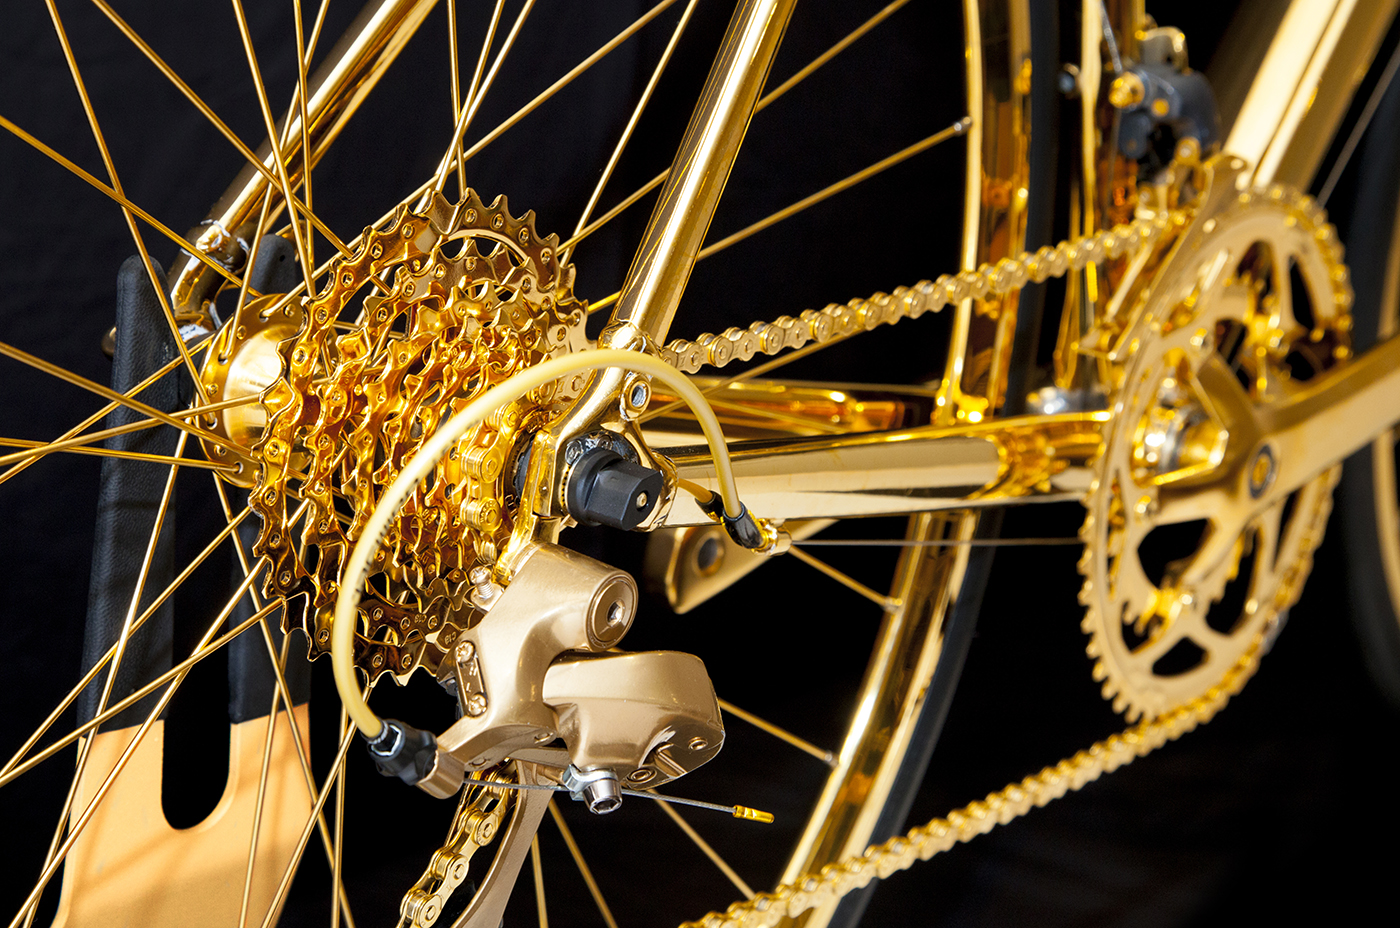 Gold plated bicycle